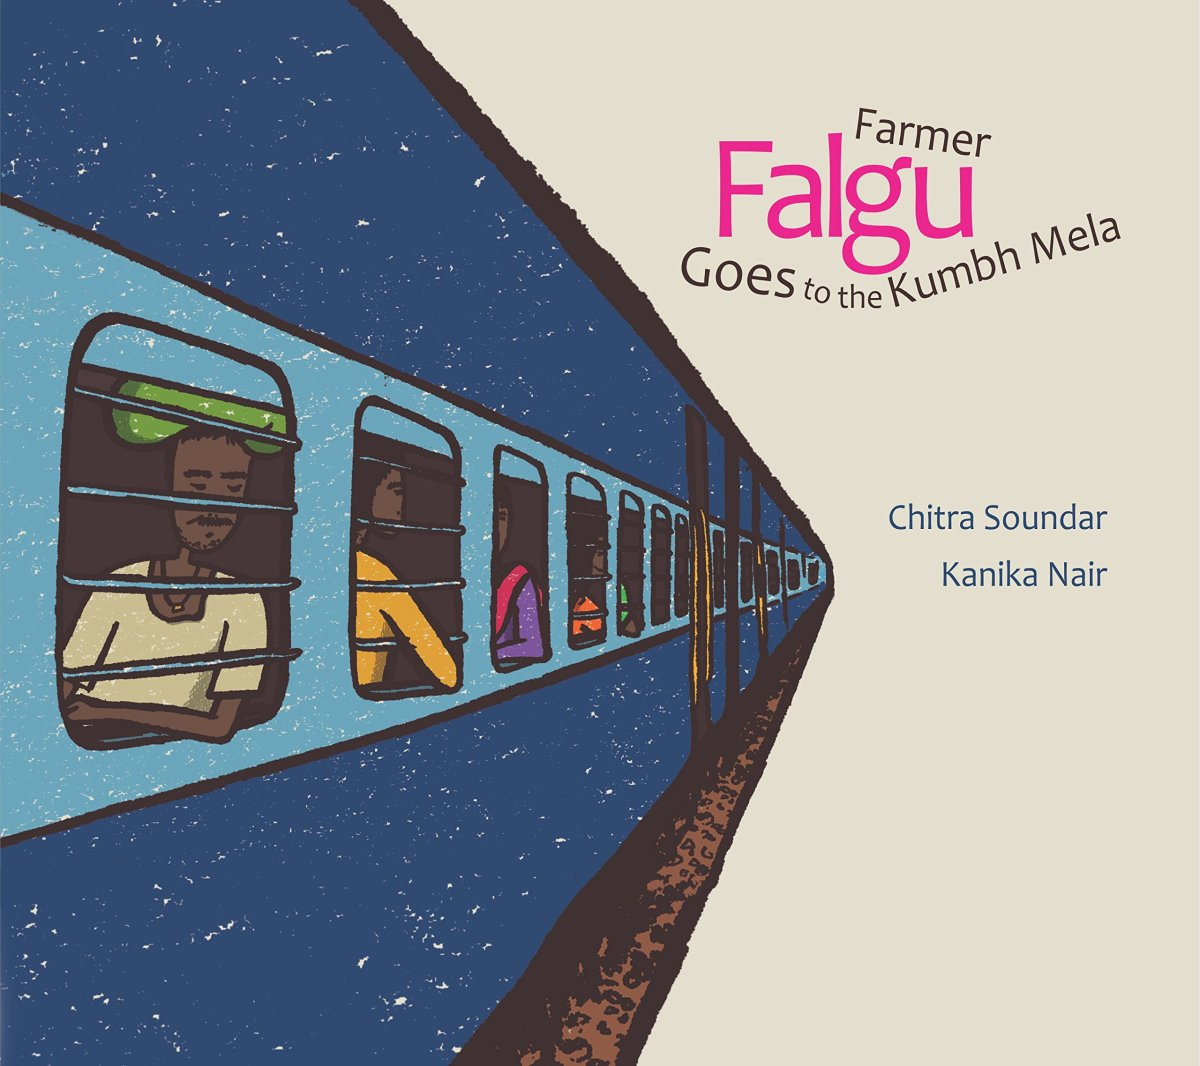 farmer falgu cover image